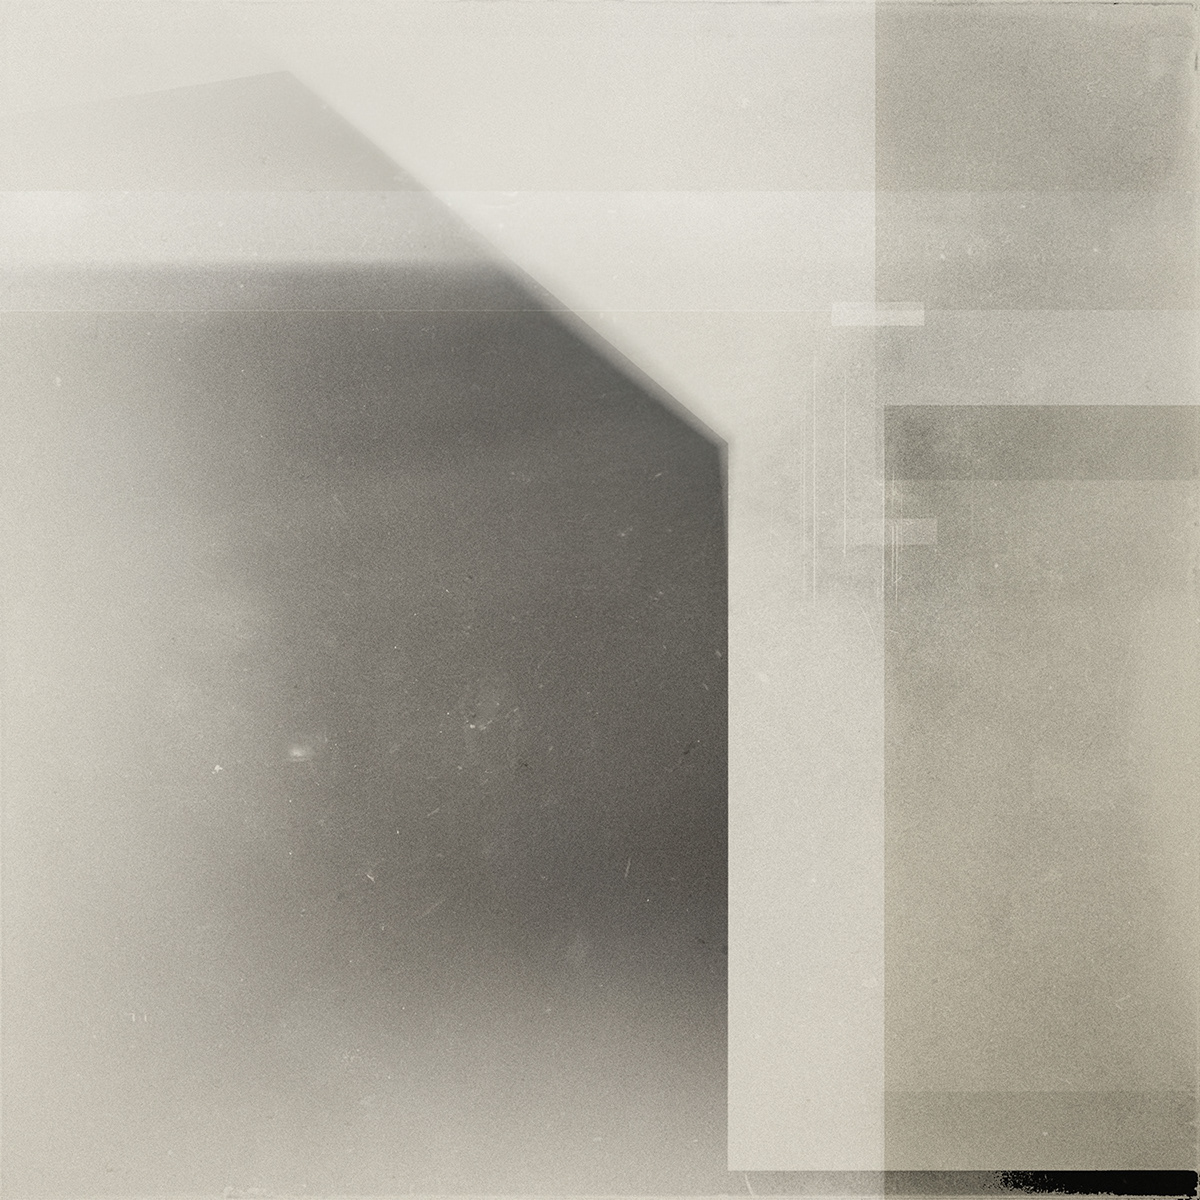 analogue filters Digital Art  figures and landscapes Shadows layers